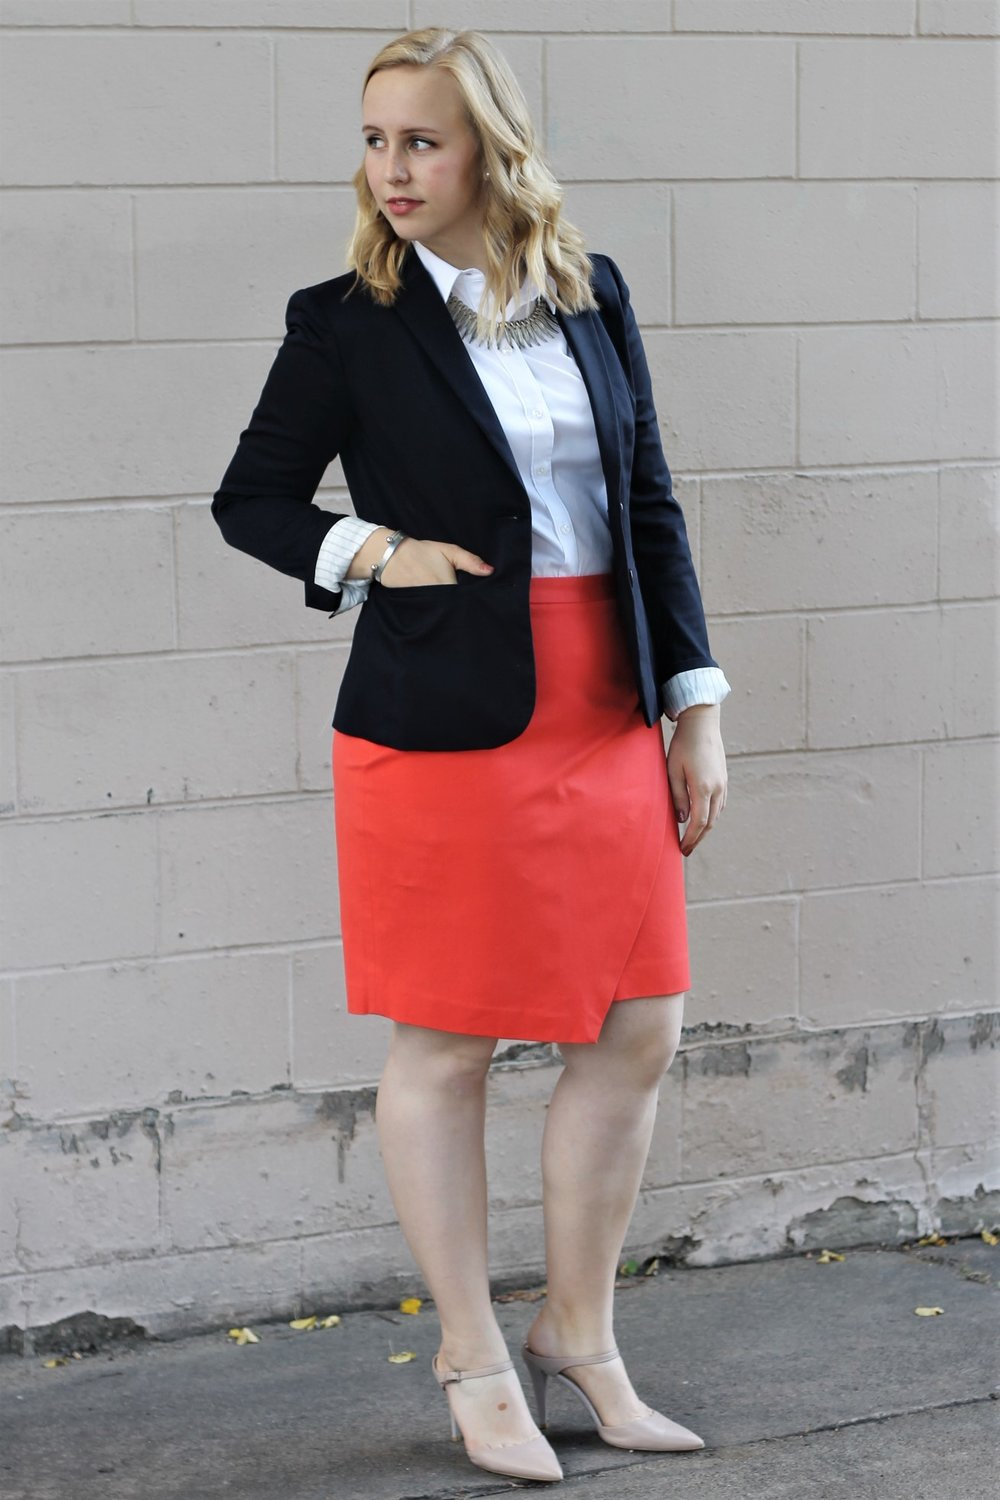 Interview Season | Bright Orange Pencil Skirt Turned Corporate Chic | Work & What She Wore